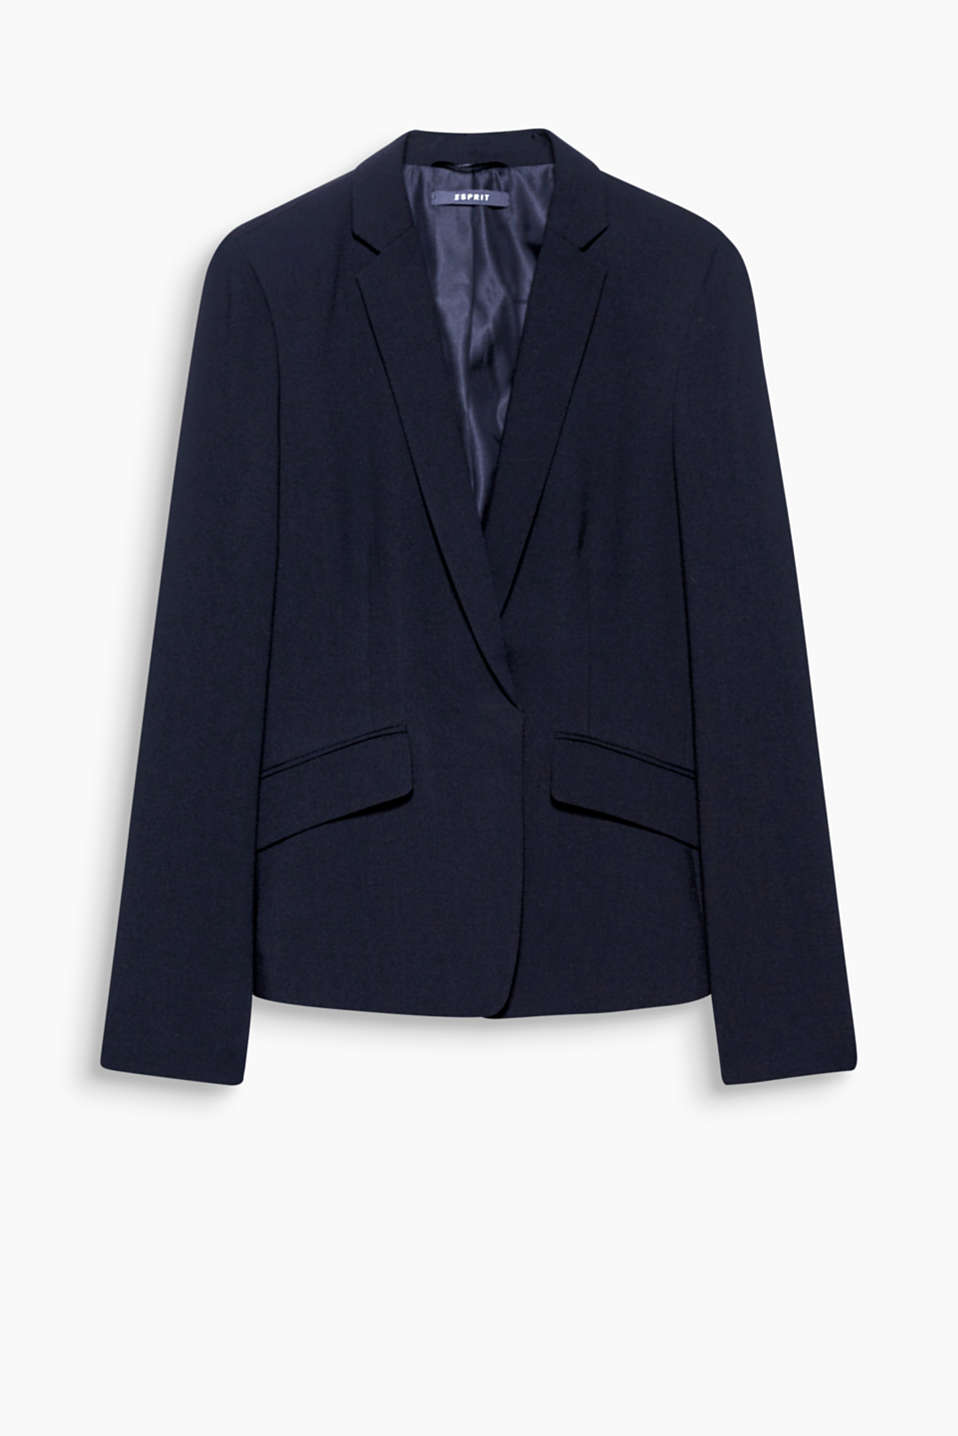 Feminine and smart business wear: fitted blazer with a two-tone herringbone texture